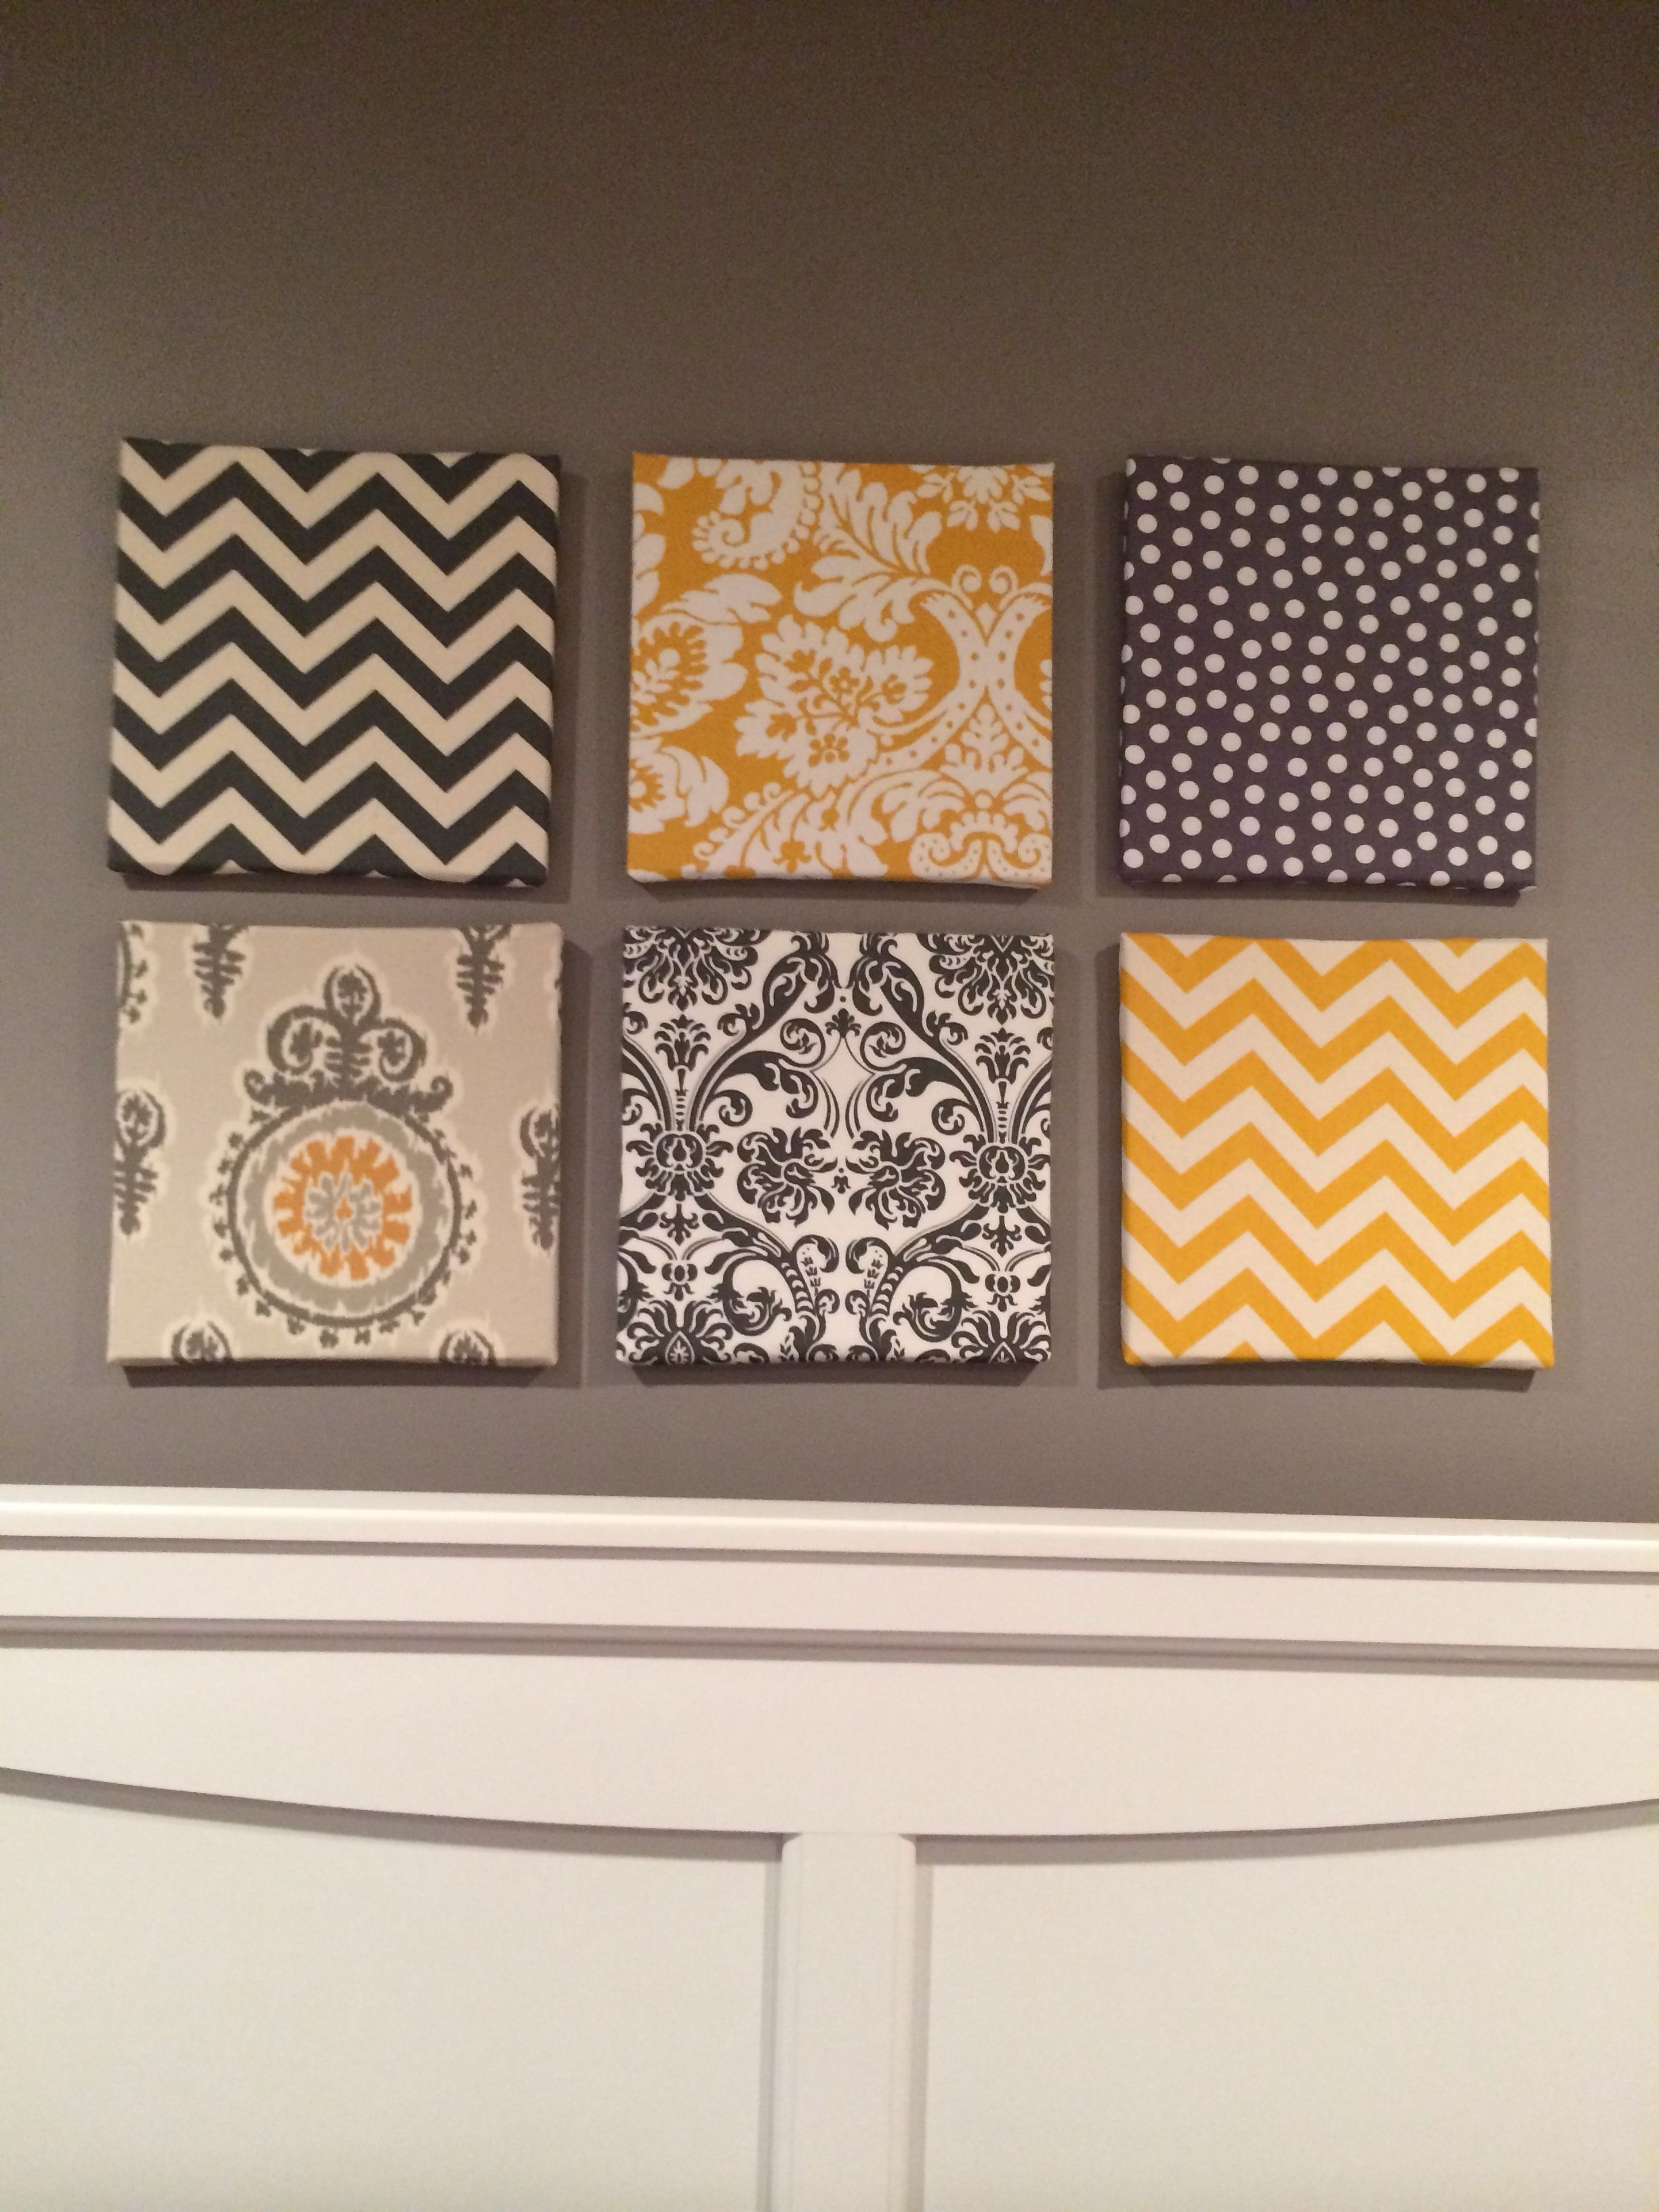 Newest My Fabric Over Canvas Wall Art For My Gray And Yellow Themed Room Within Canvas Wall Art With Fabric (Gallery 8 of 15)